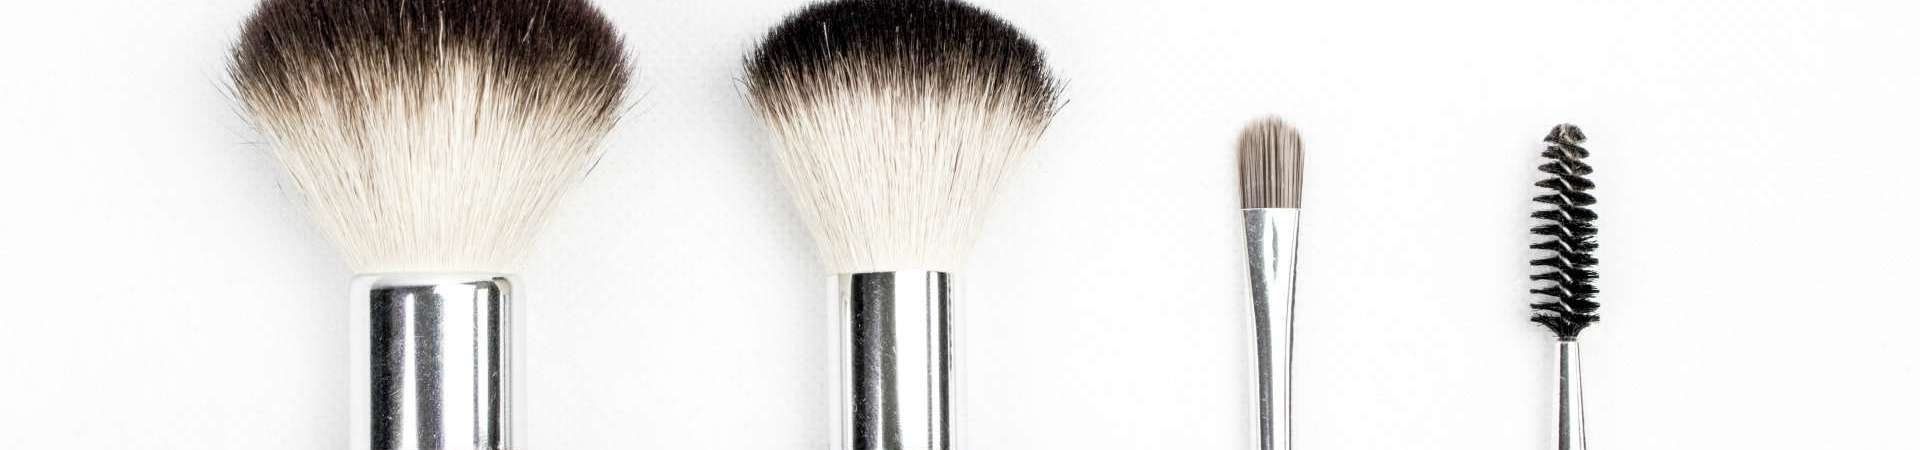 How to Clean Your Makeup Brushes | Beauty Tips | #makeup #makeupbrushes #cleaning